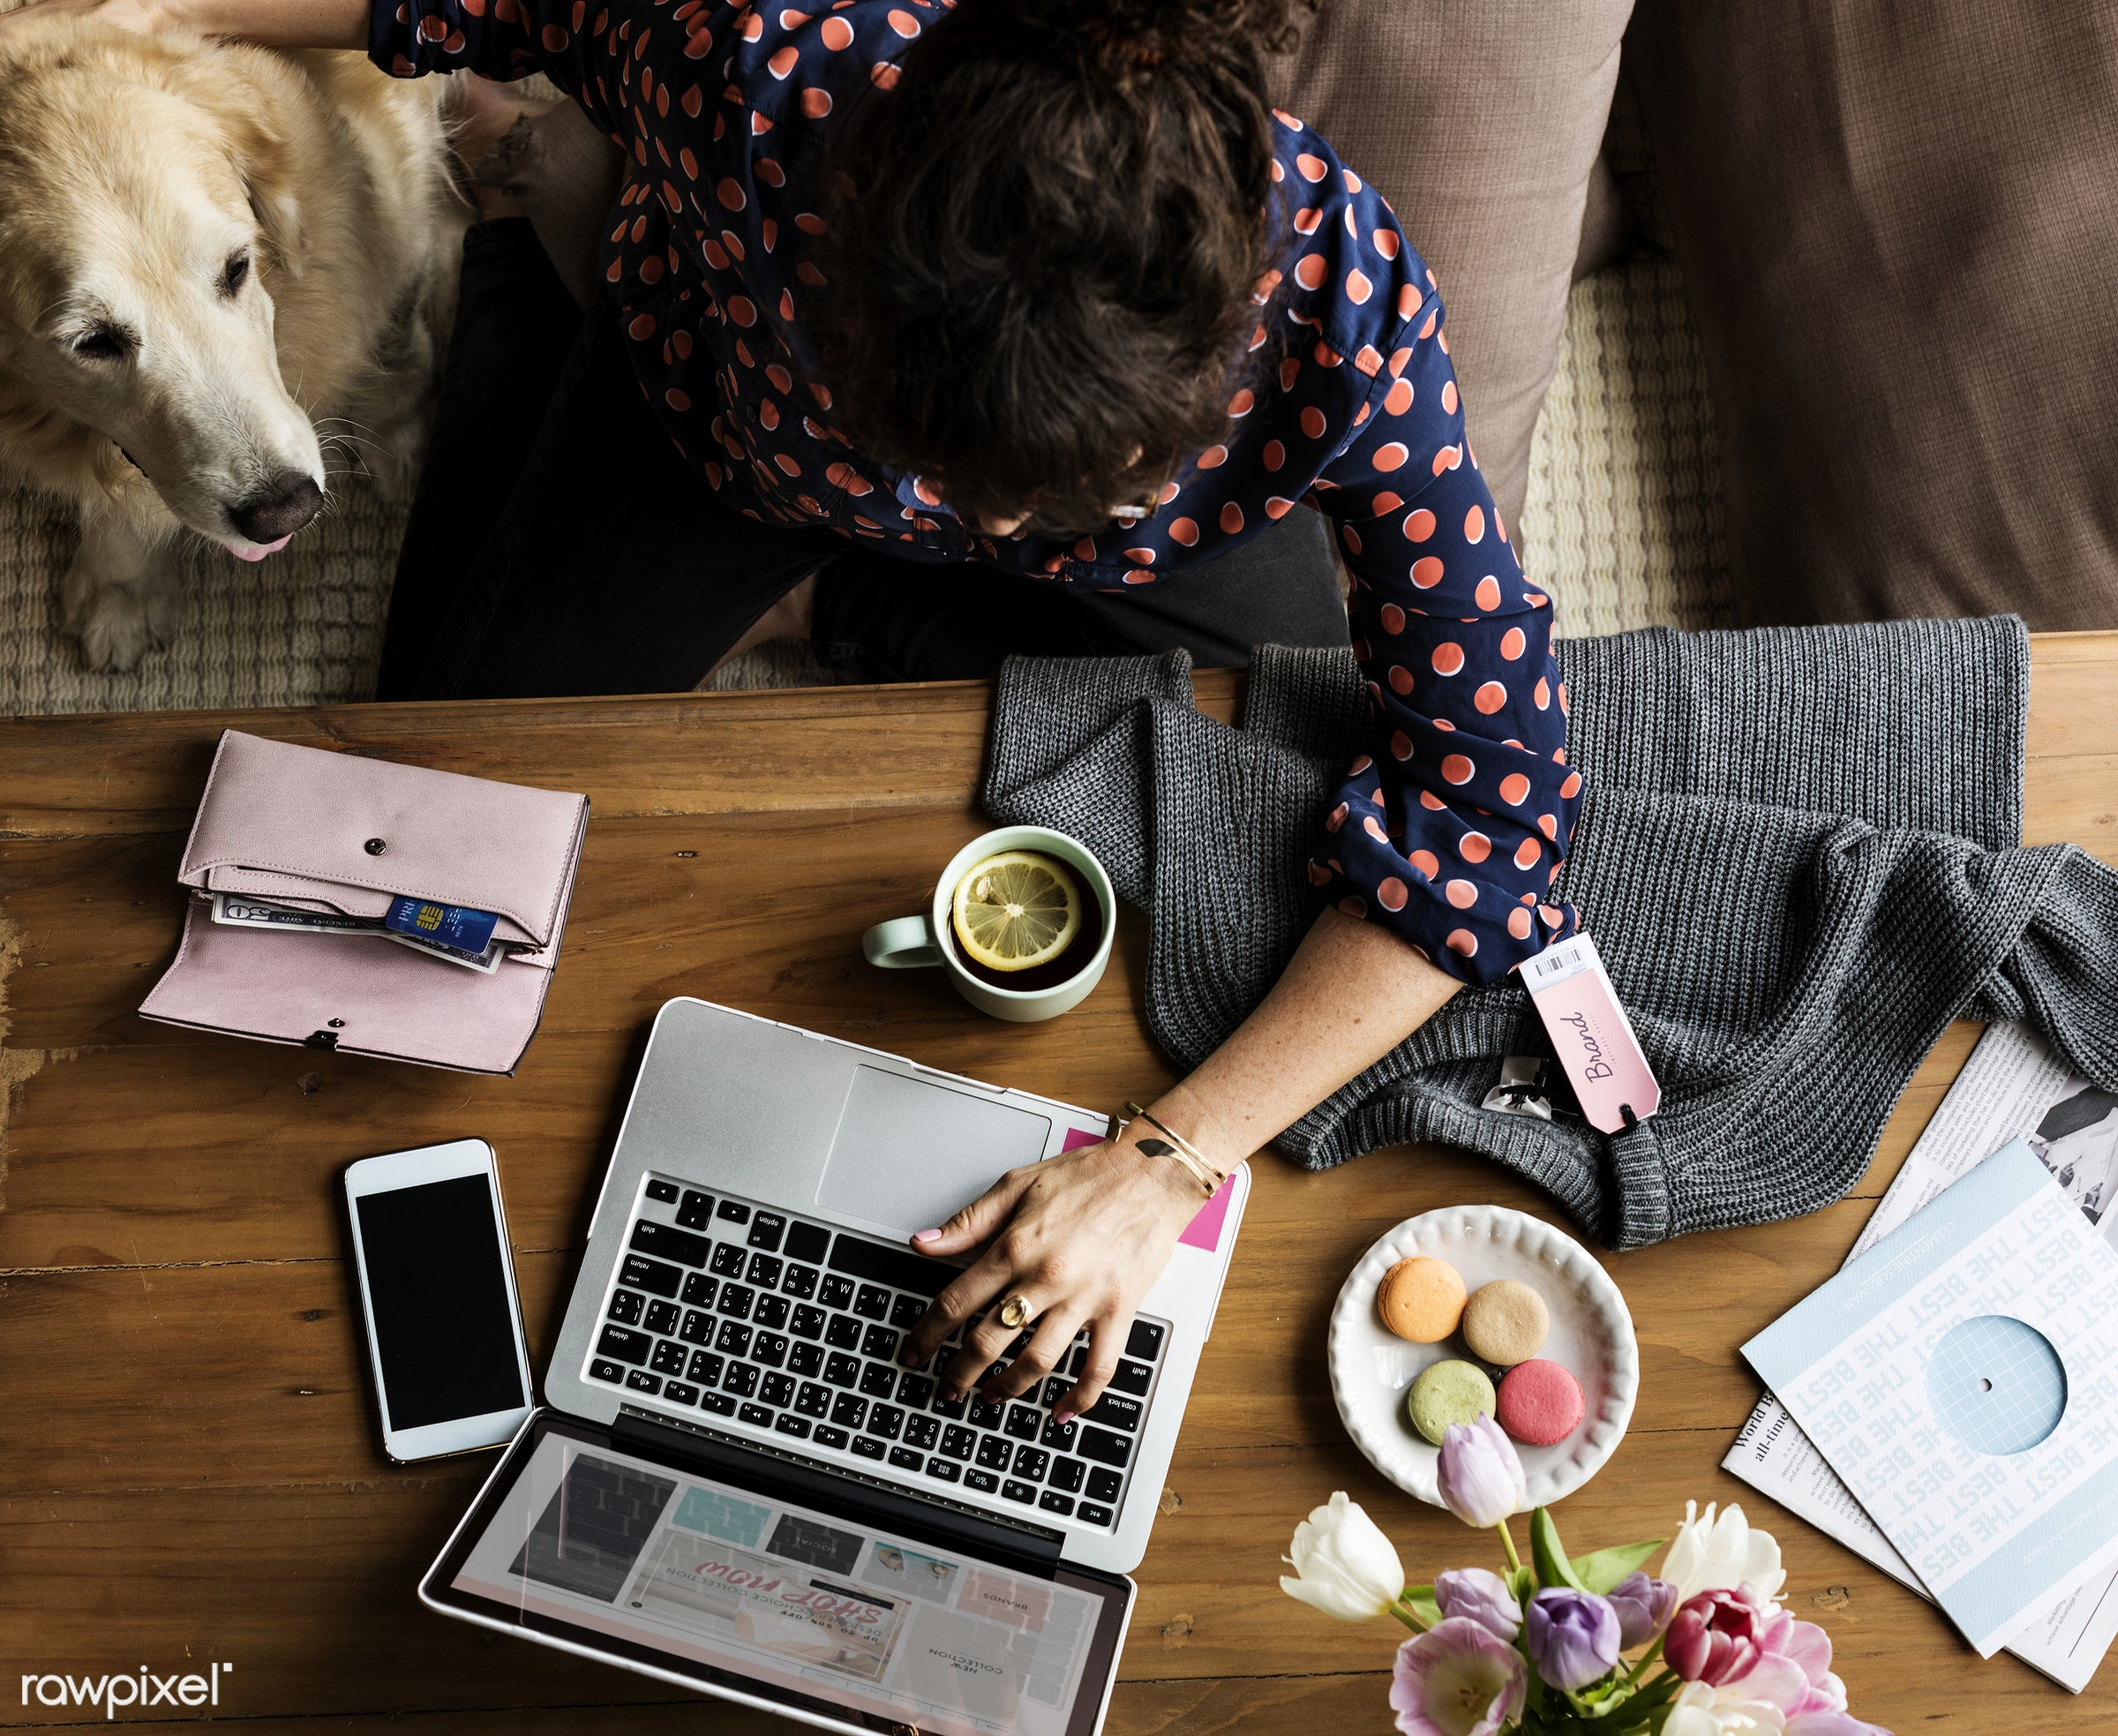 desktop, animal, phone, shopping, adult, attach, attached, cellphone, chill, device, digital, dog, flowers, internet, laptop...